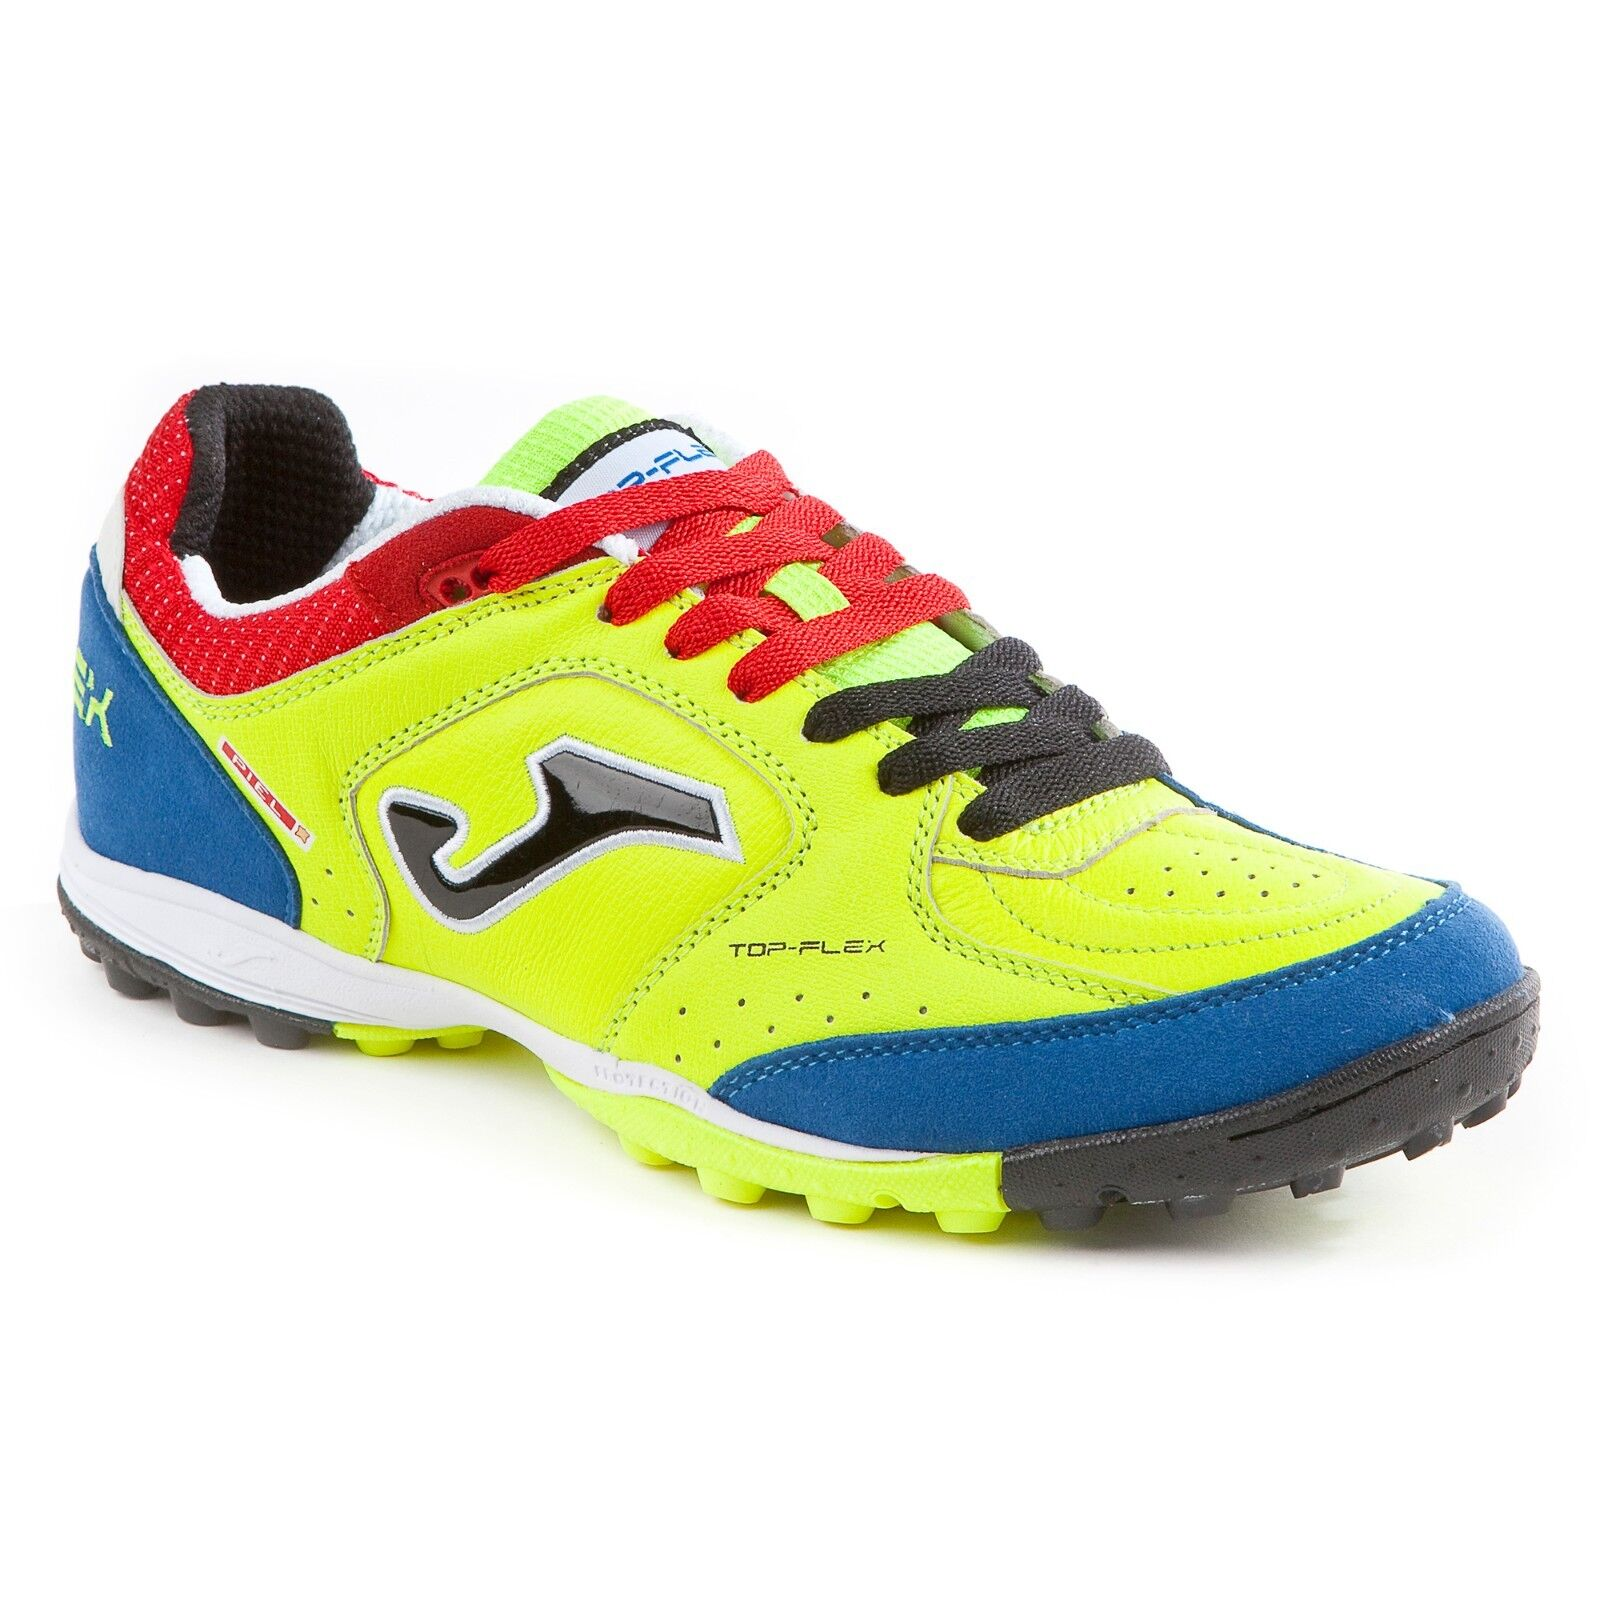 Joma - Top Flex 711 Flour Turf - Sautope Calcetto Turf - TOPW.711.TF